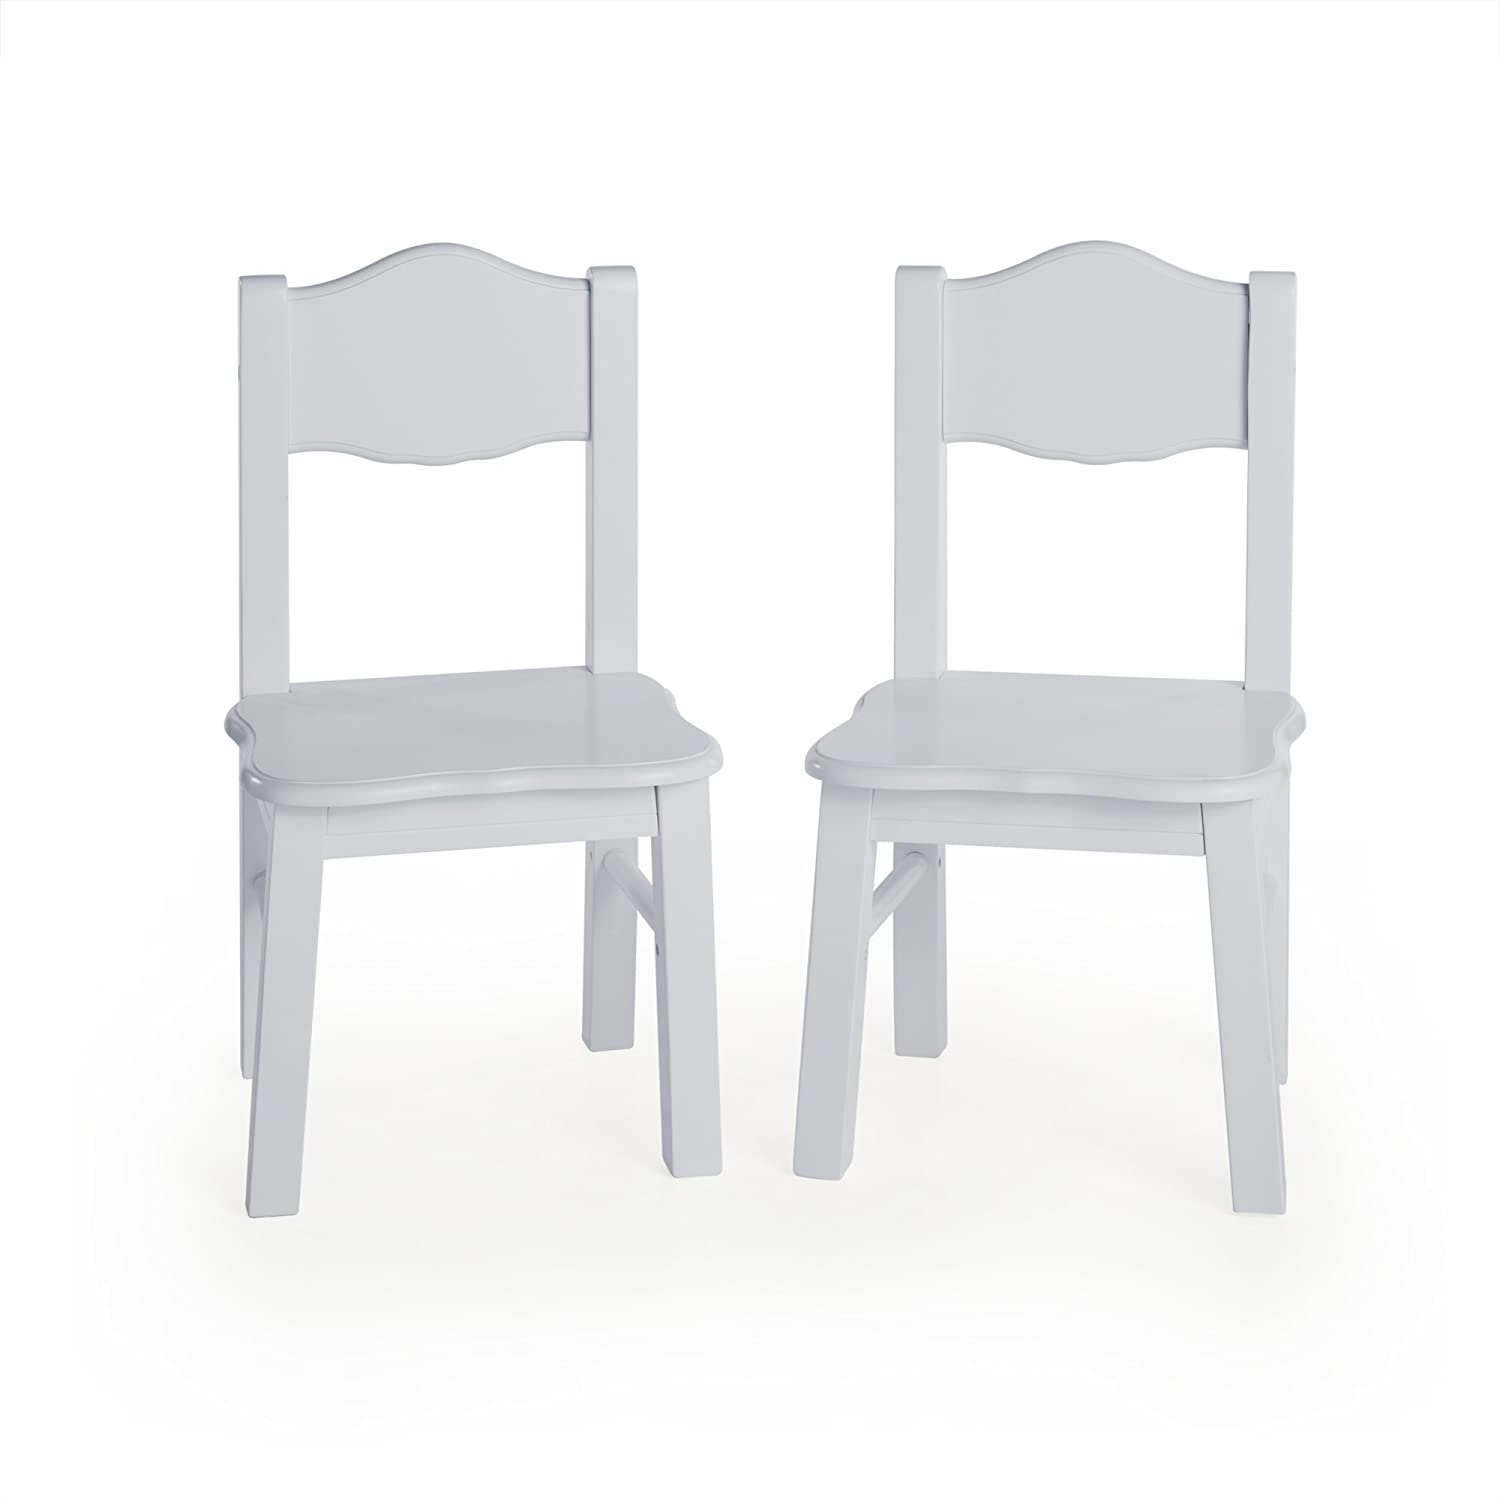 Guidecraft Classic Espresso Extra Chairs - Kids Furniture - Set of 2 24993E